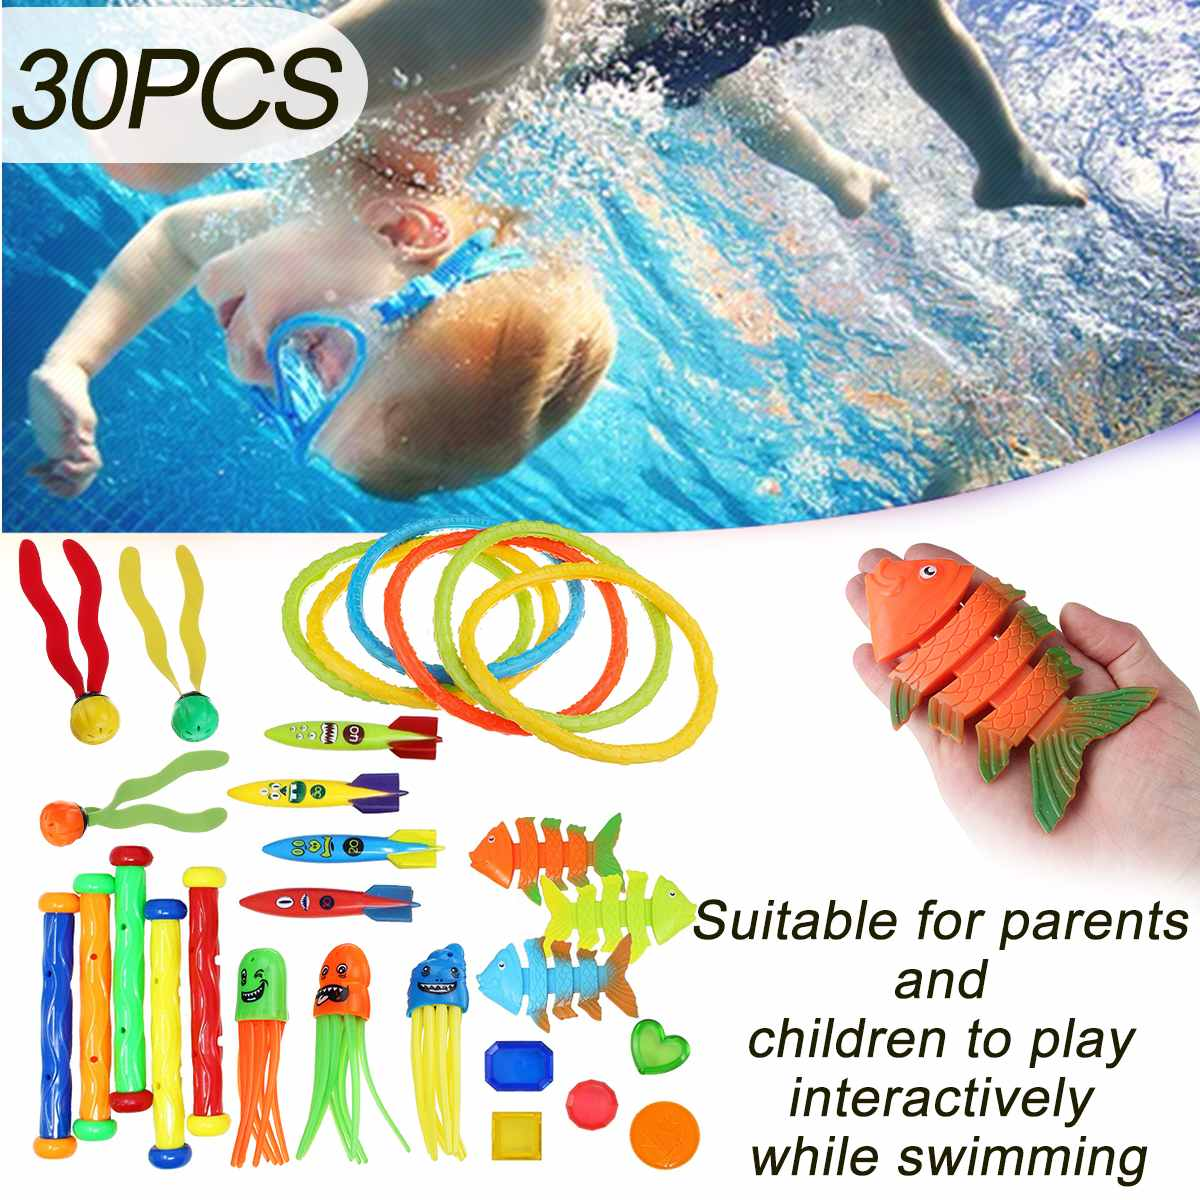 Ideal Pool Party Game Toys Gift for 3 4 5 6 Years Old Shining Underwater Swimming Dive Pool Toy Set for Kids Boys Girls Child Light-up Diving Pool Toys Set 6 Pack Summer Swimming Diving Toy Animals